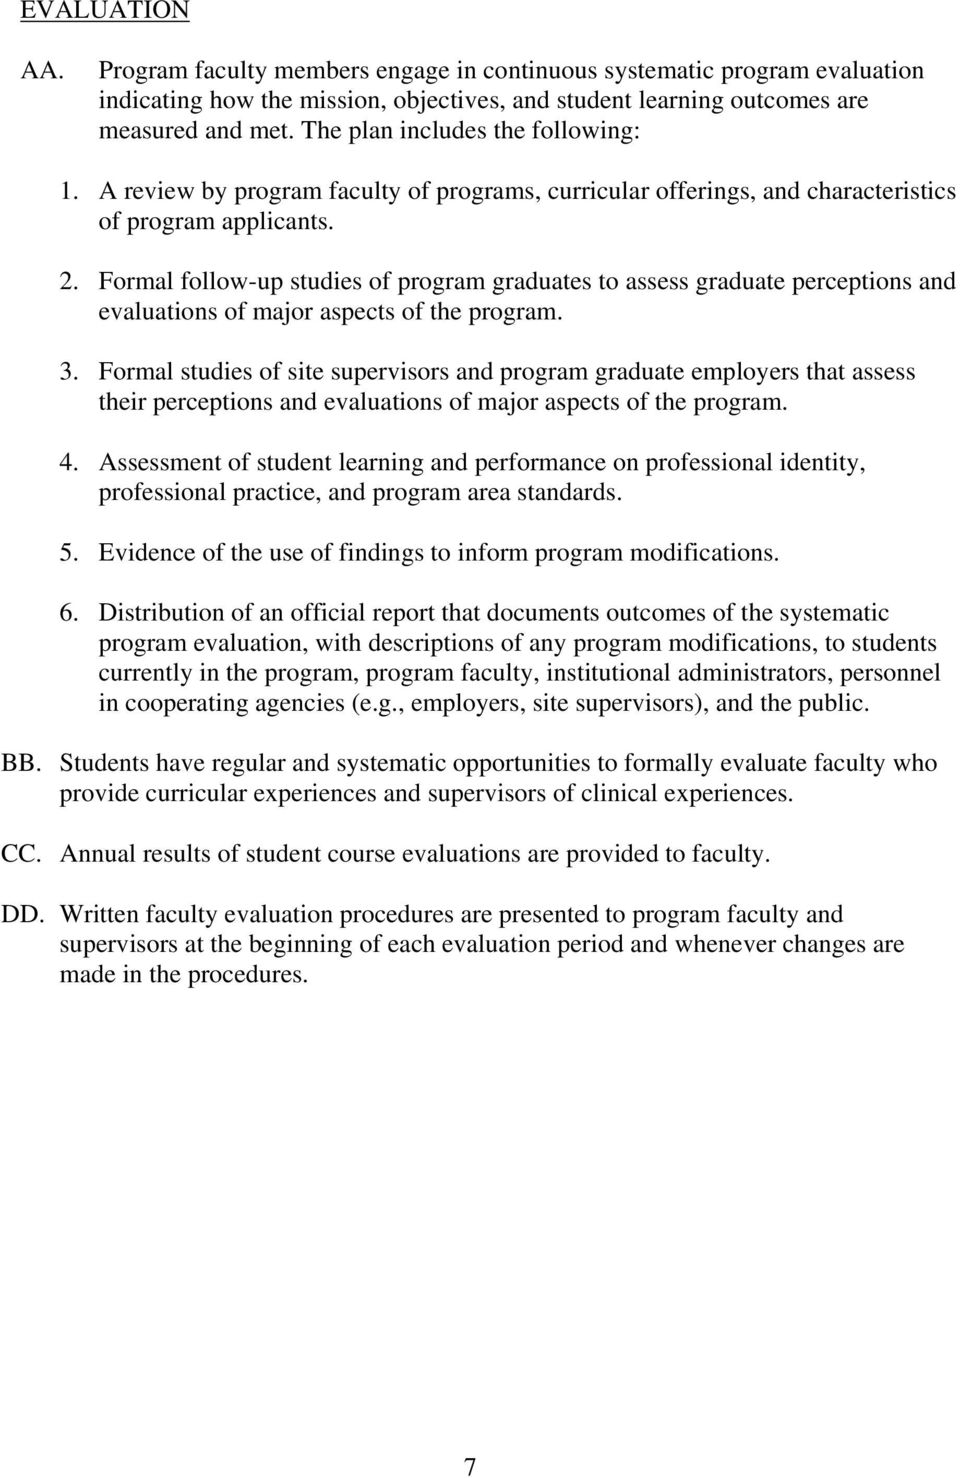 Formal follow-up studies of program graduates to assess graduate perceptions and evaluations of major aspects of the program. 3.